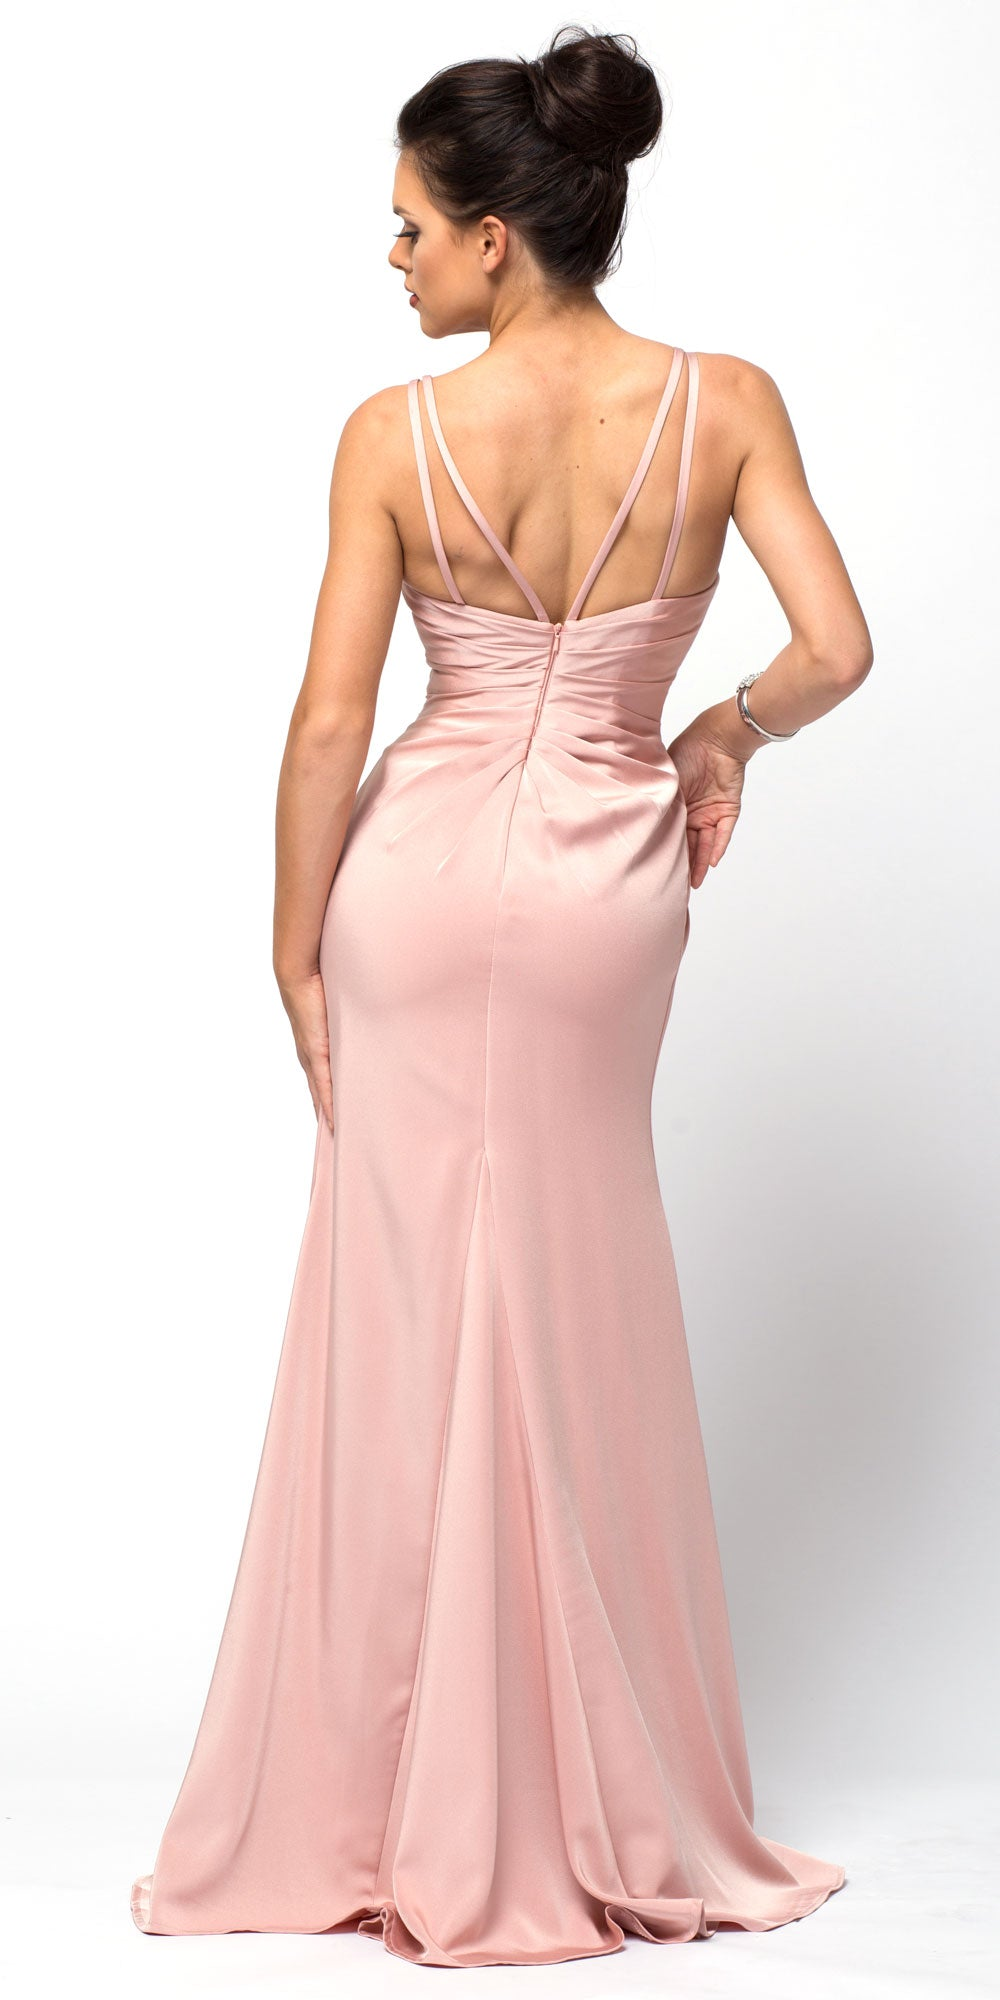 Image of Double Spaghetti Straps Overlay Bodice Long Bridesmaid Dress back in Rose